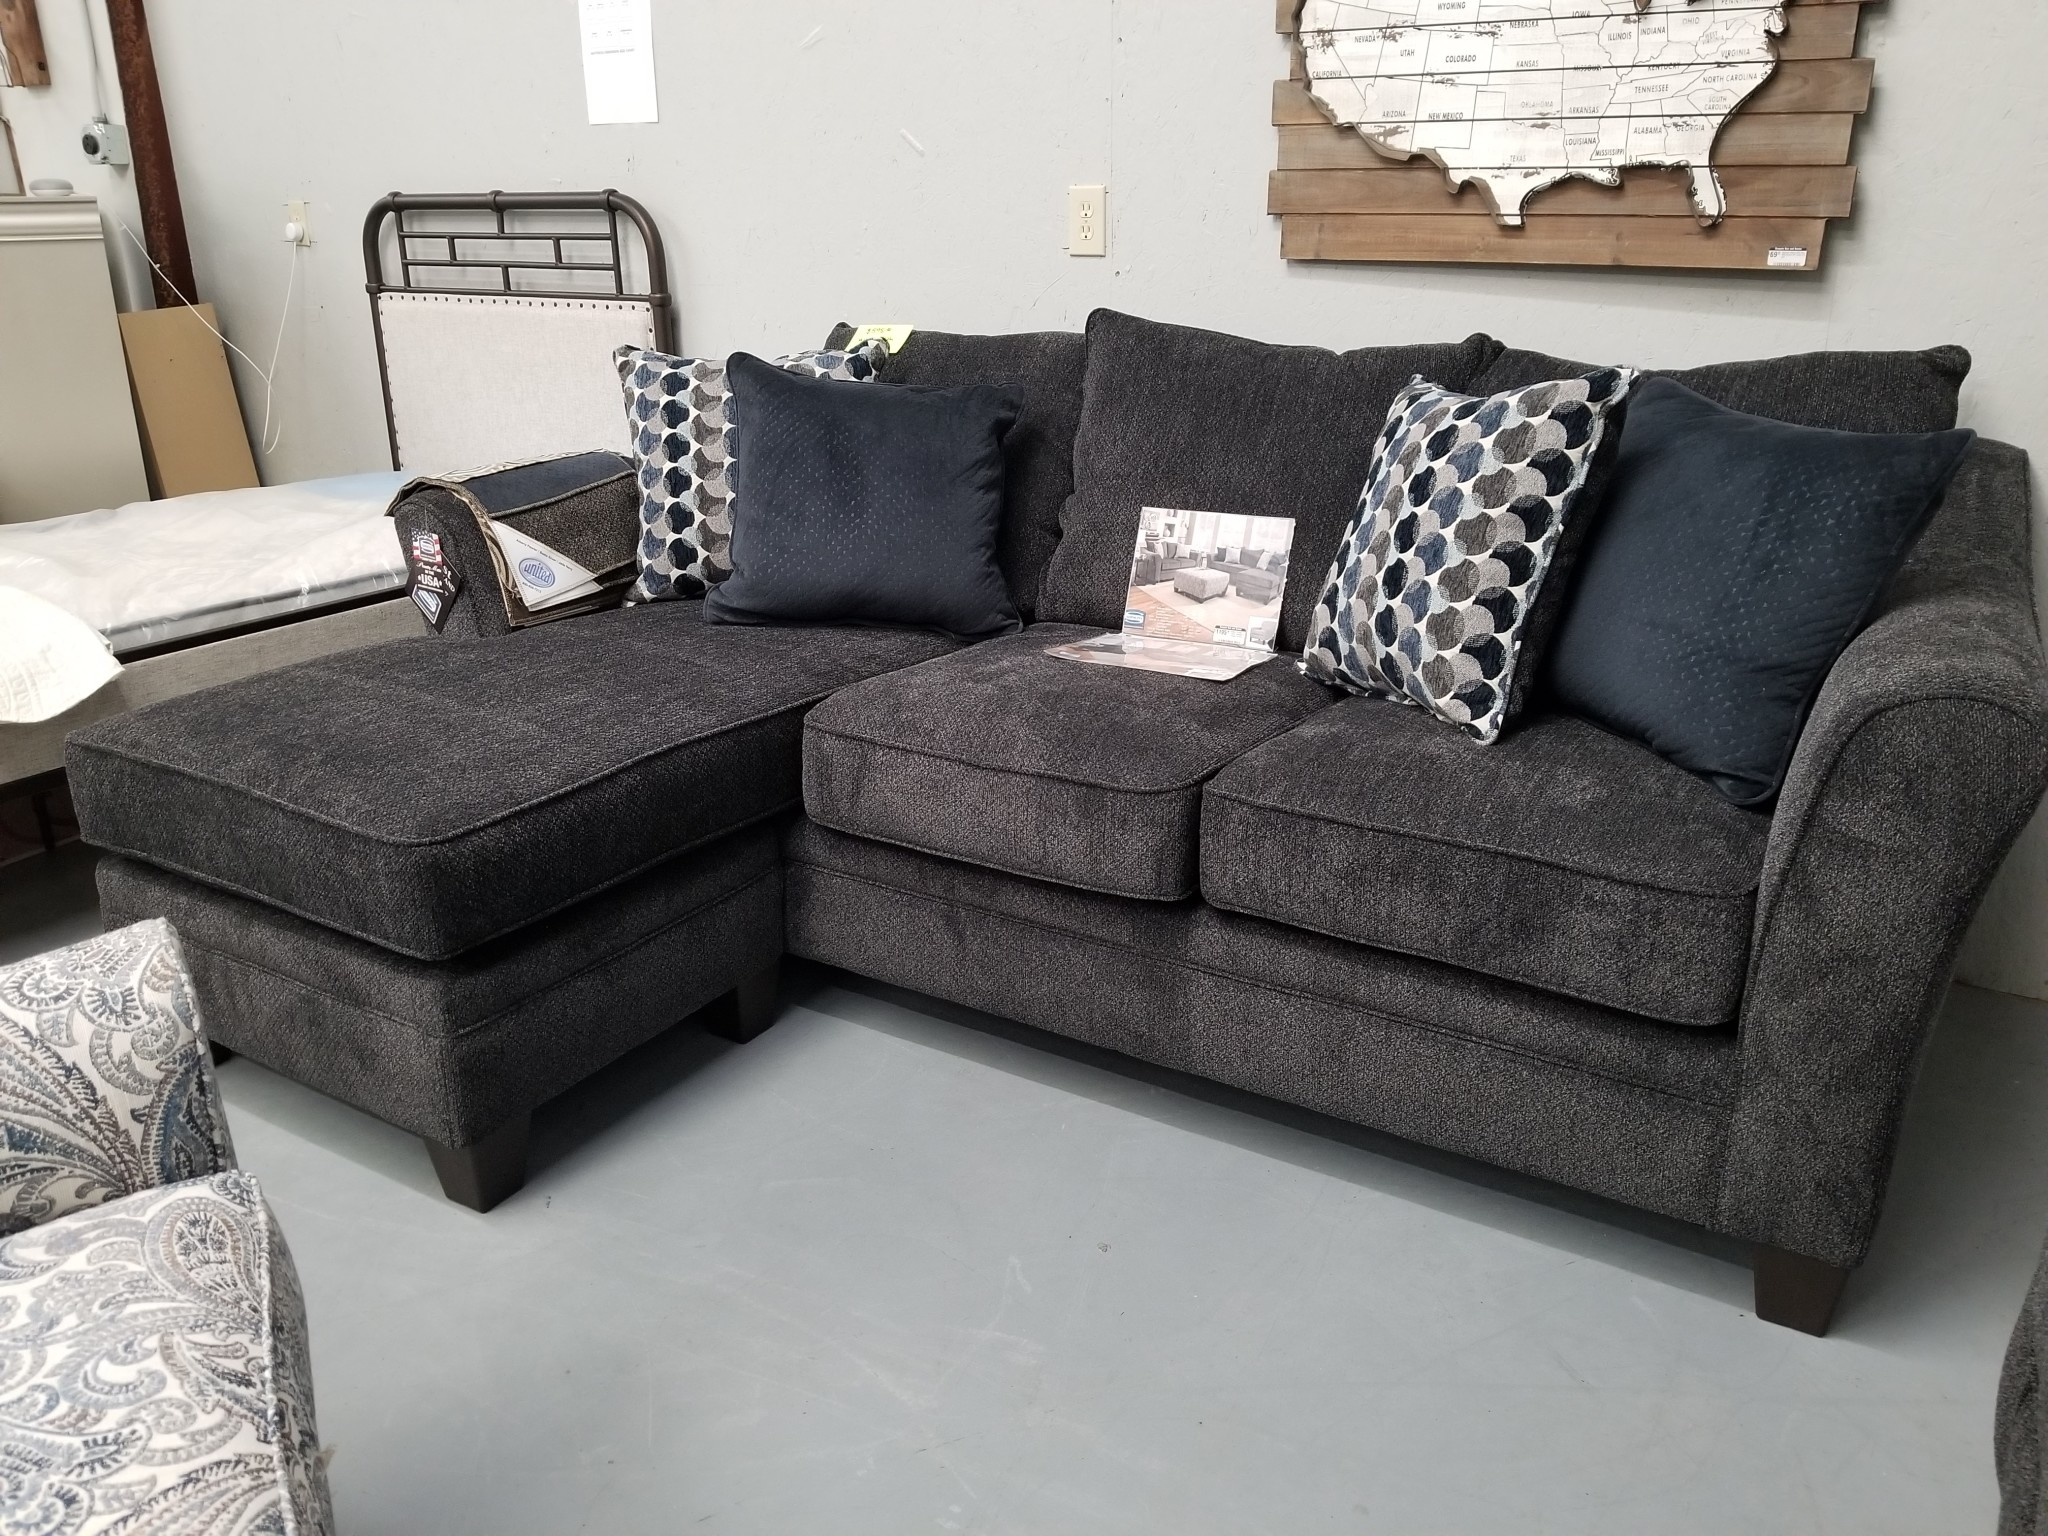 Albany Slate Chofa Sofa W/ Chaise Bubbles Ink